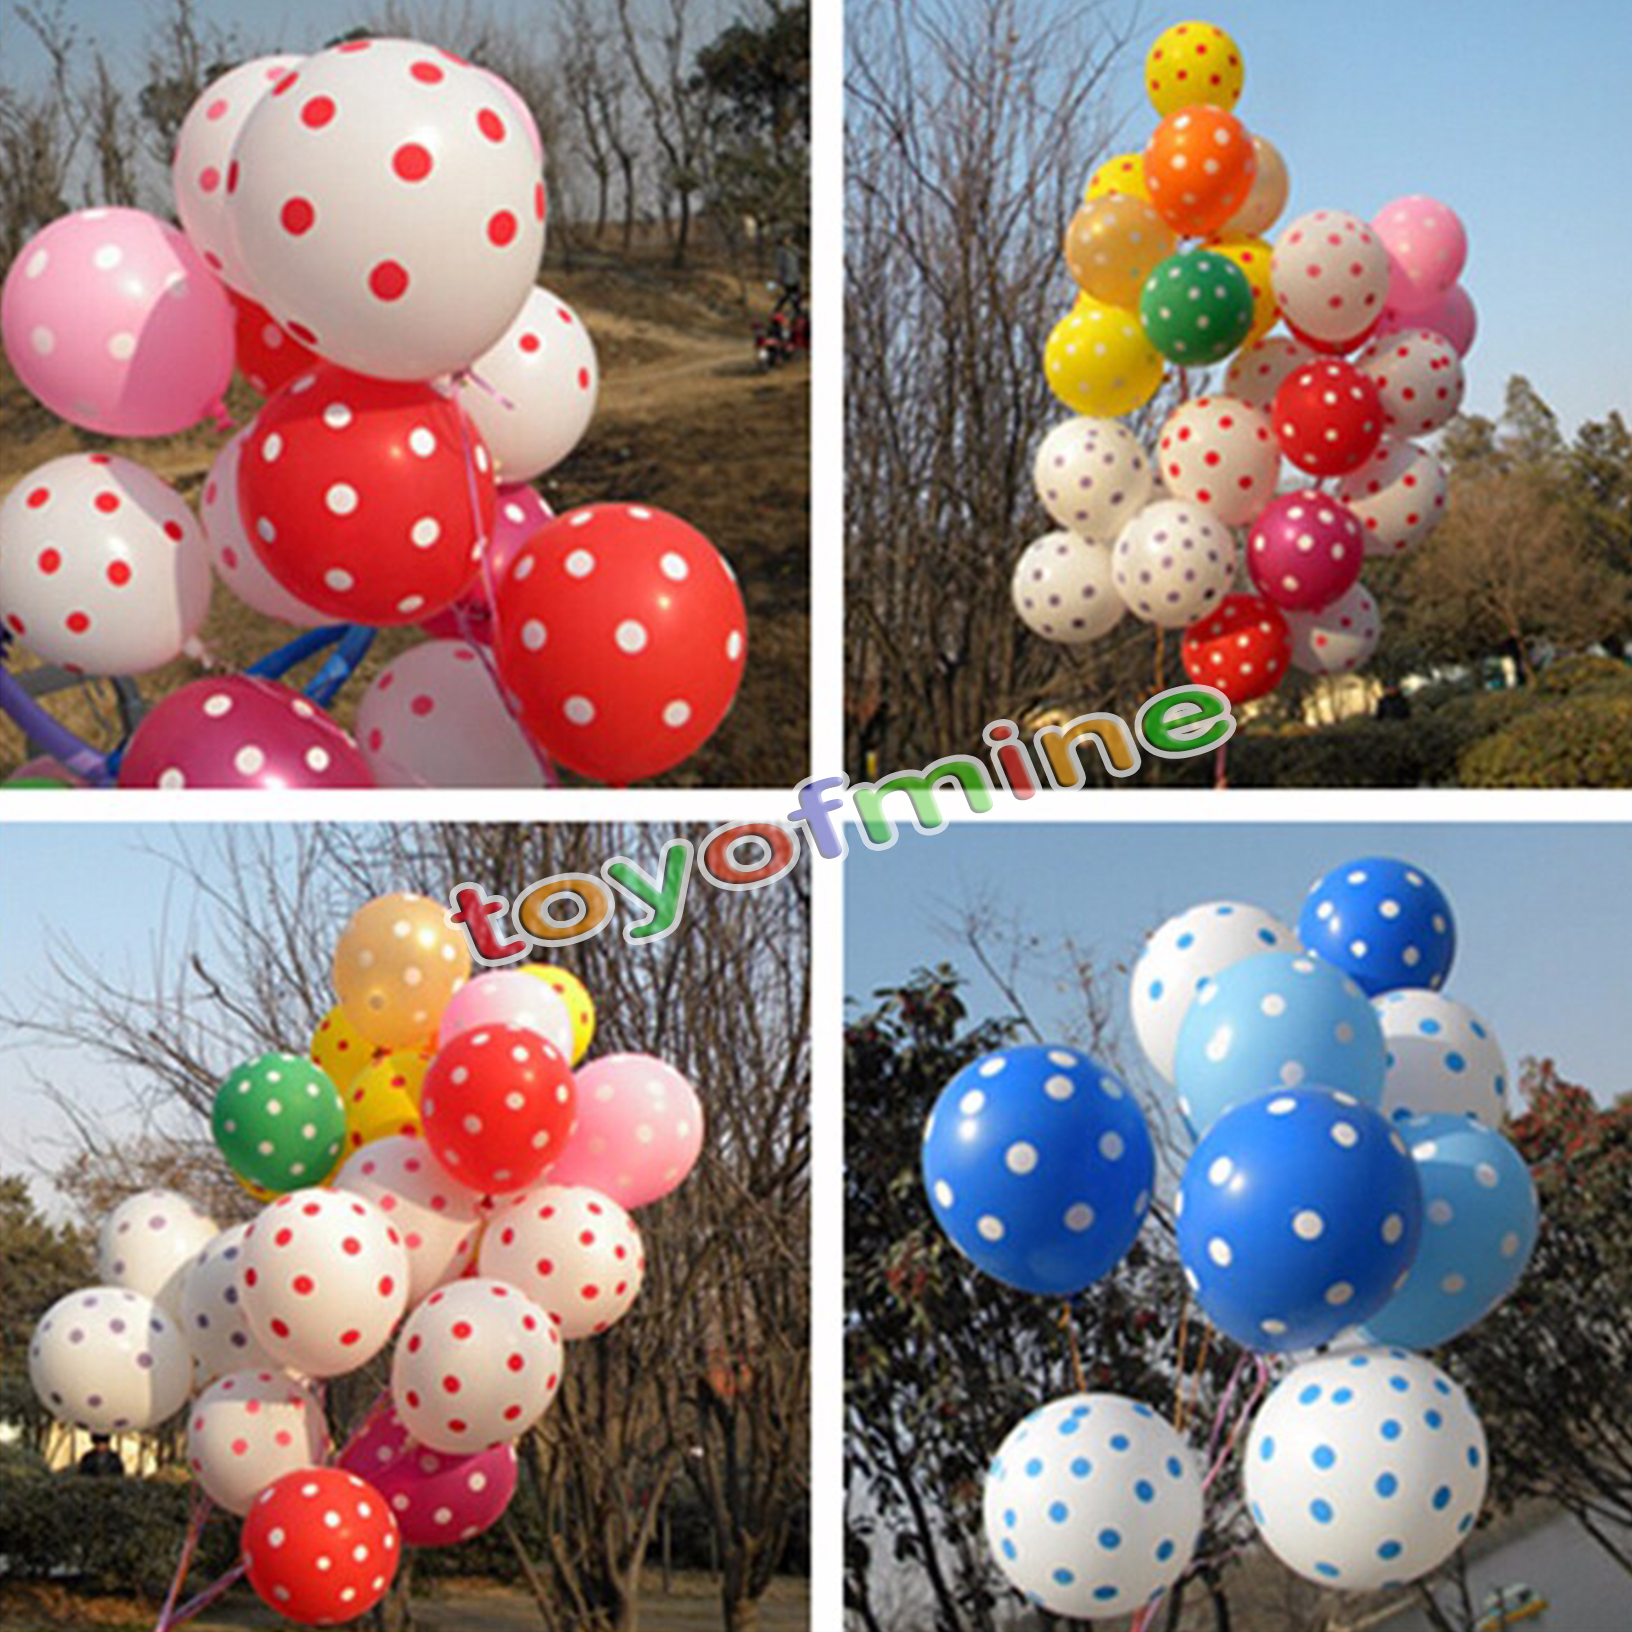 50PCS Polka Dot Latex Balloons Party Accessories Wedding Birthday Decorations Festival Decor Kids Toy(China (Mainland))